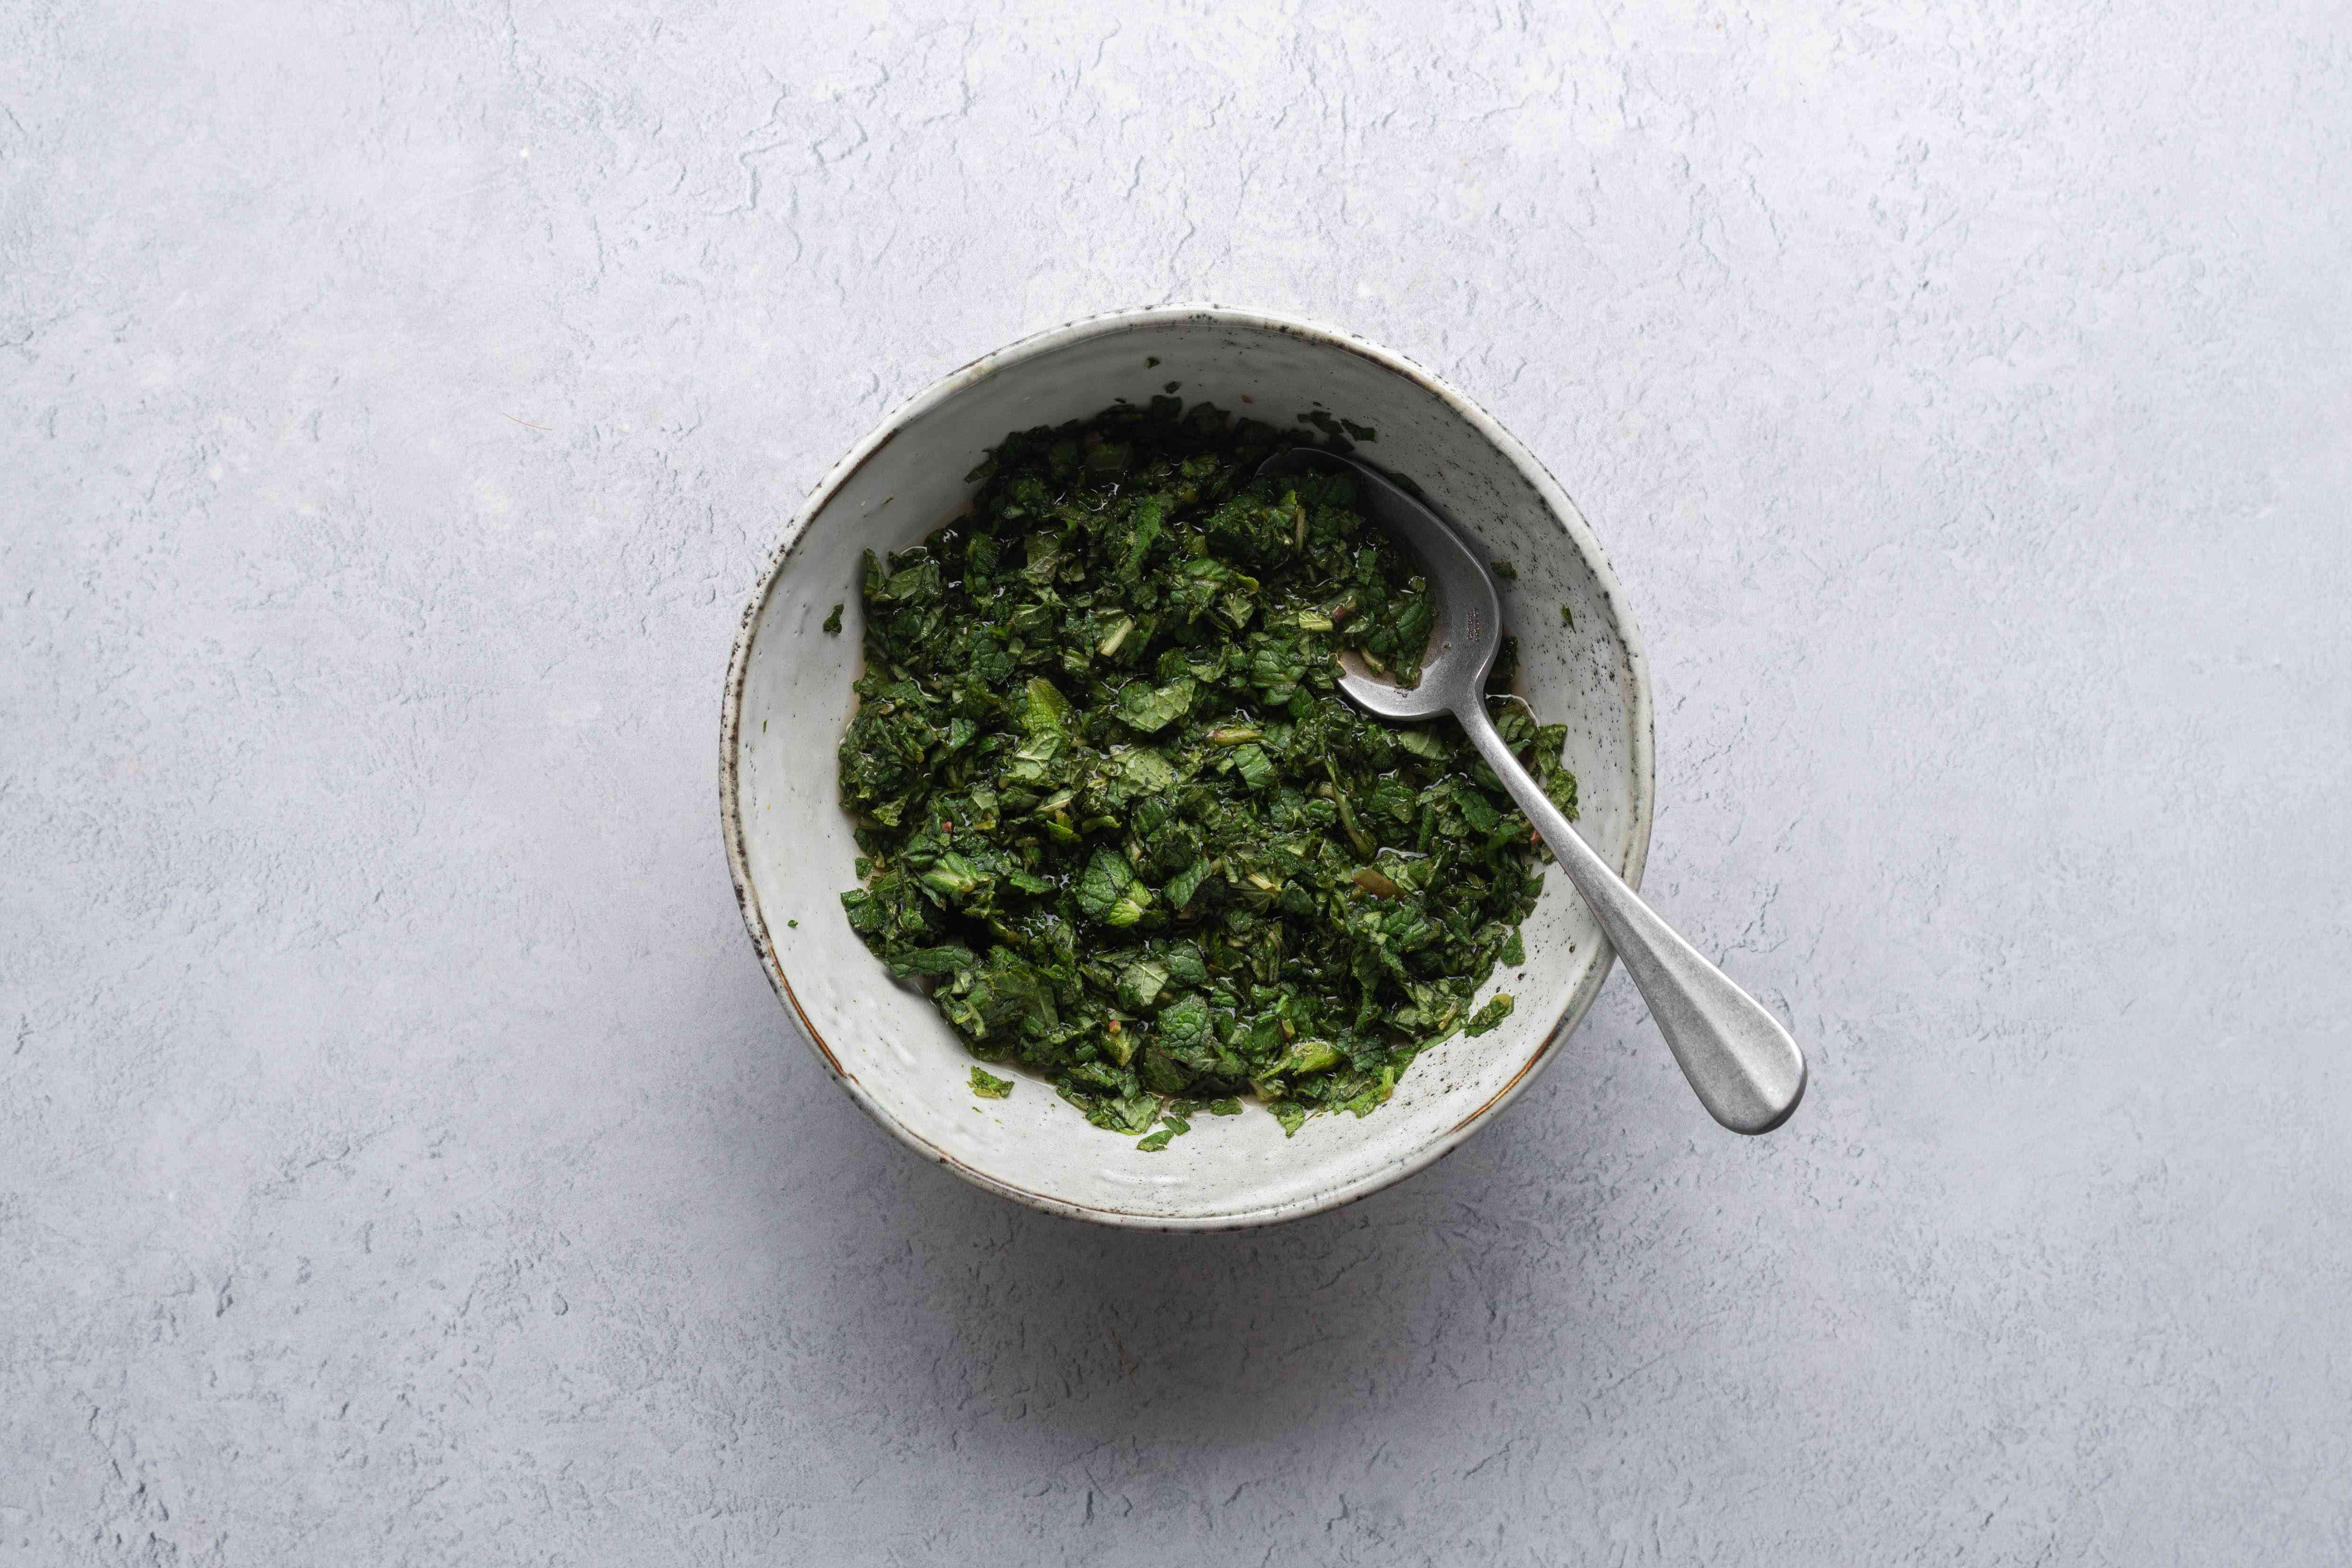 Homemade Mint Sauce in a bowl